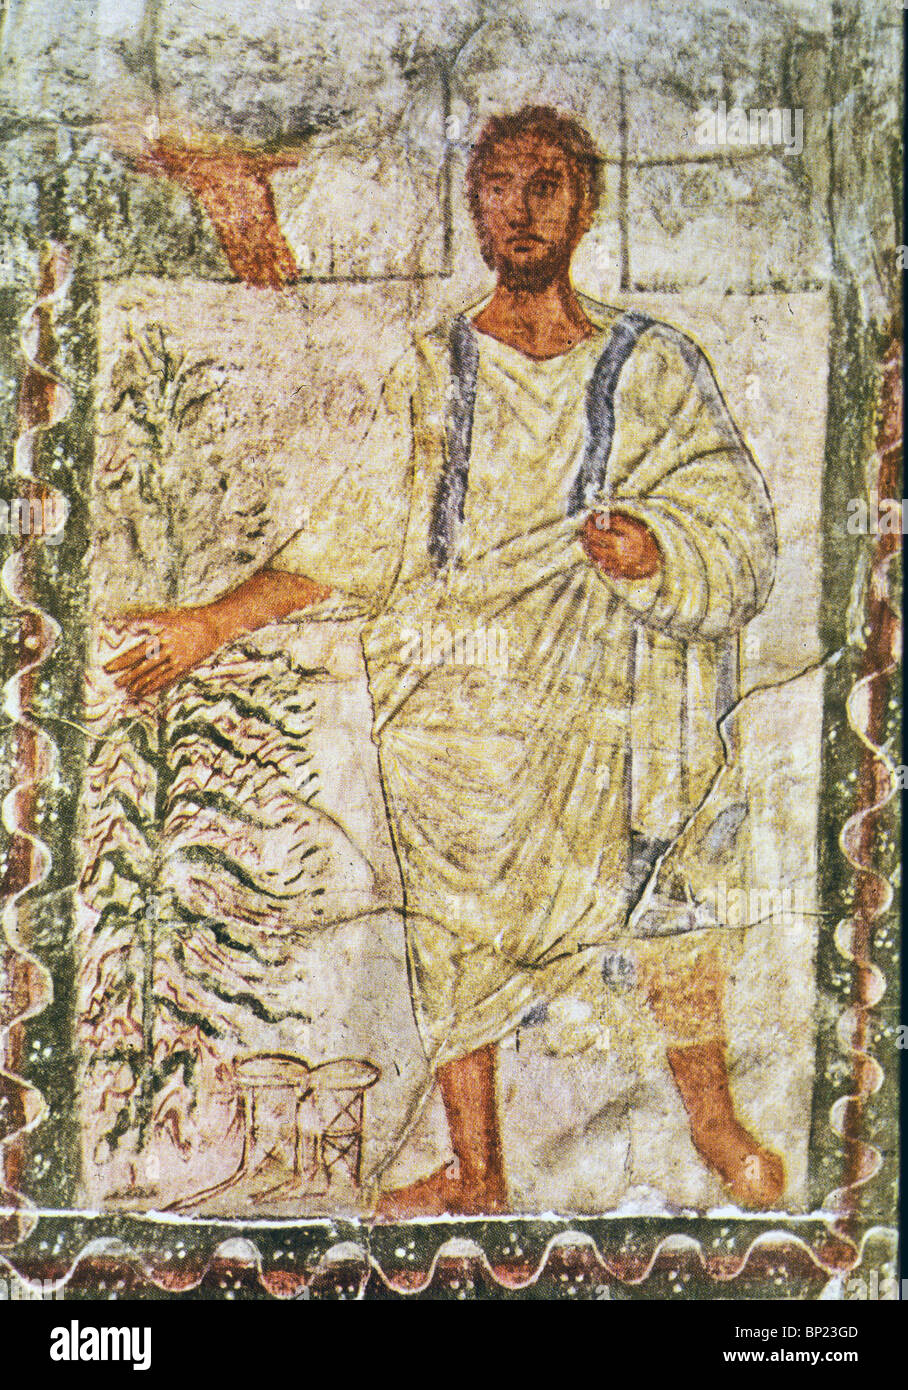 MOSES Amp THE BURNING BUSH WALL PAINTING FROM DURA EUROPOS